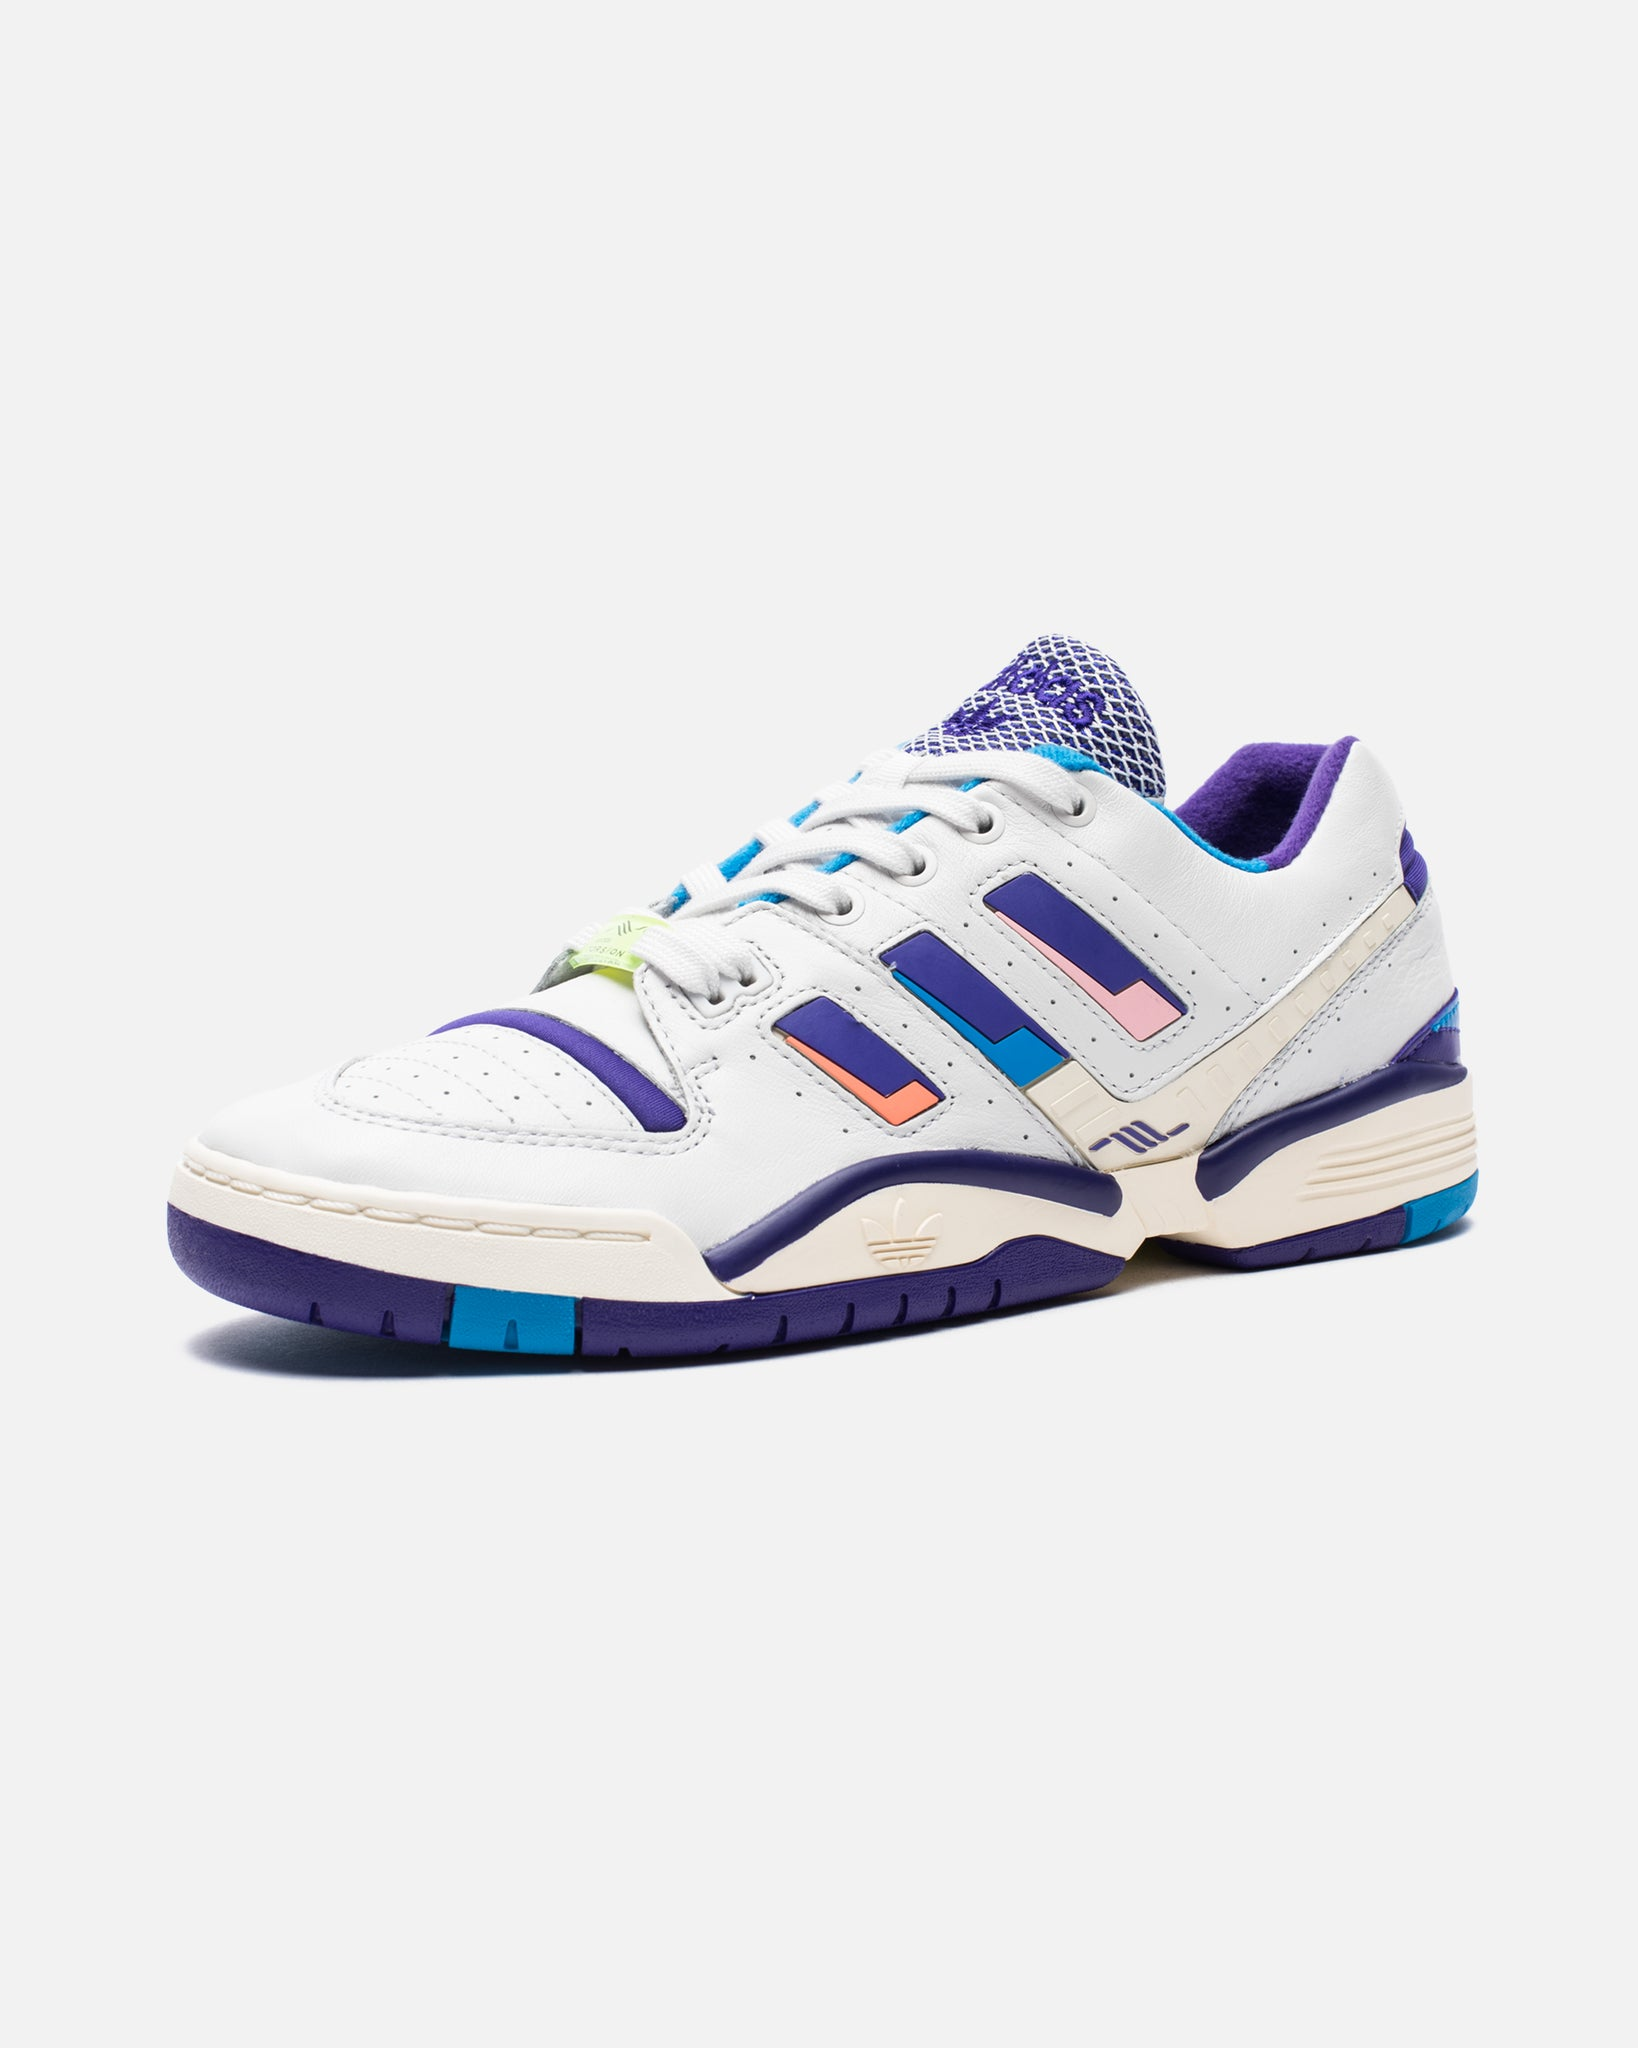 TORSION EDBERG COMP - CRYSTALWHITE/ENERGYINK/BRIGHTBLUE